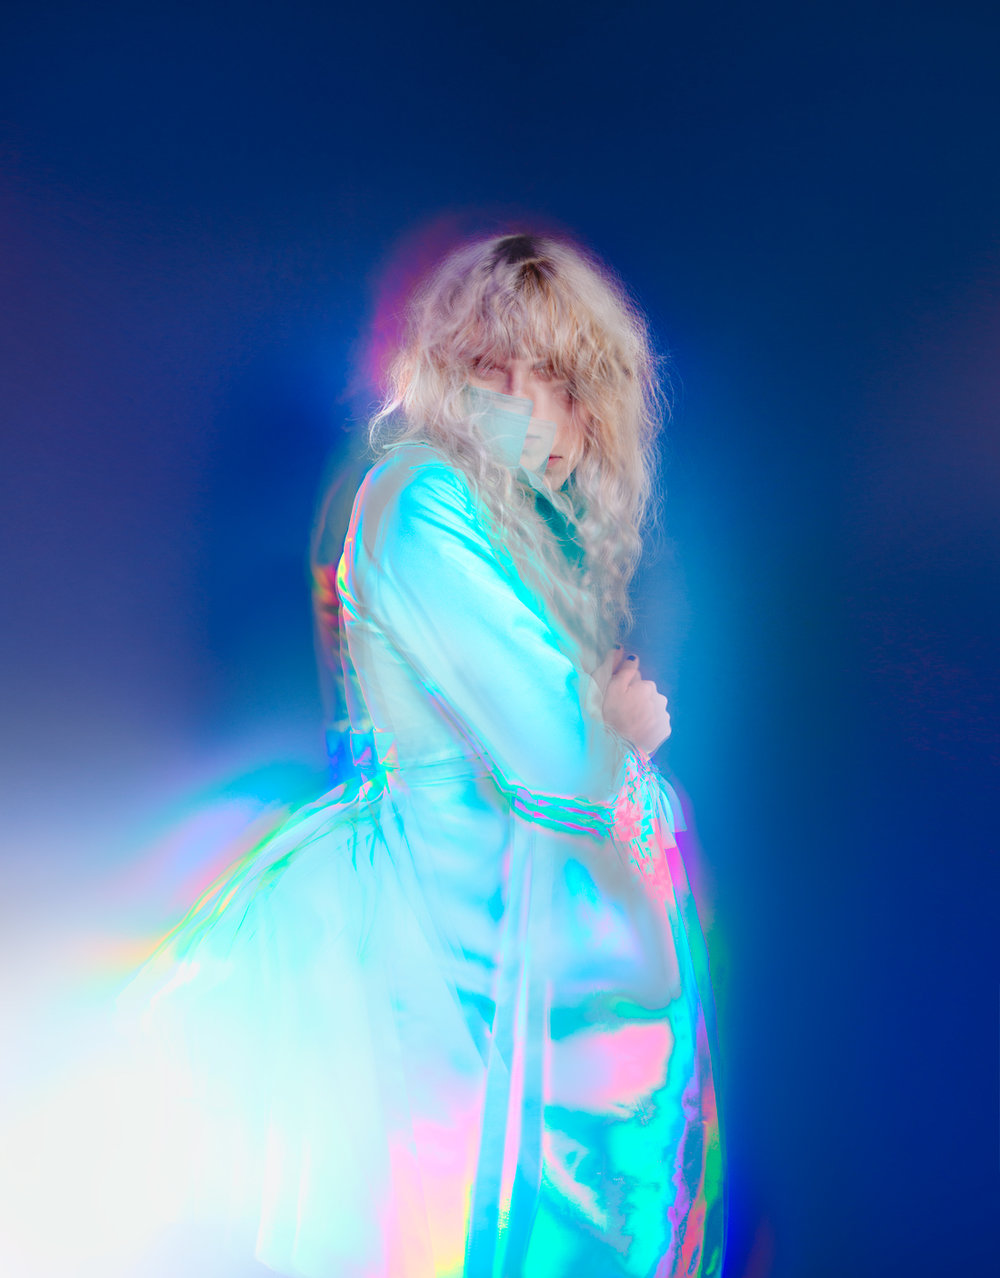 iridescent glitch icon by commercial fashion artist photographer justin atkins.jpg